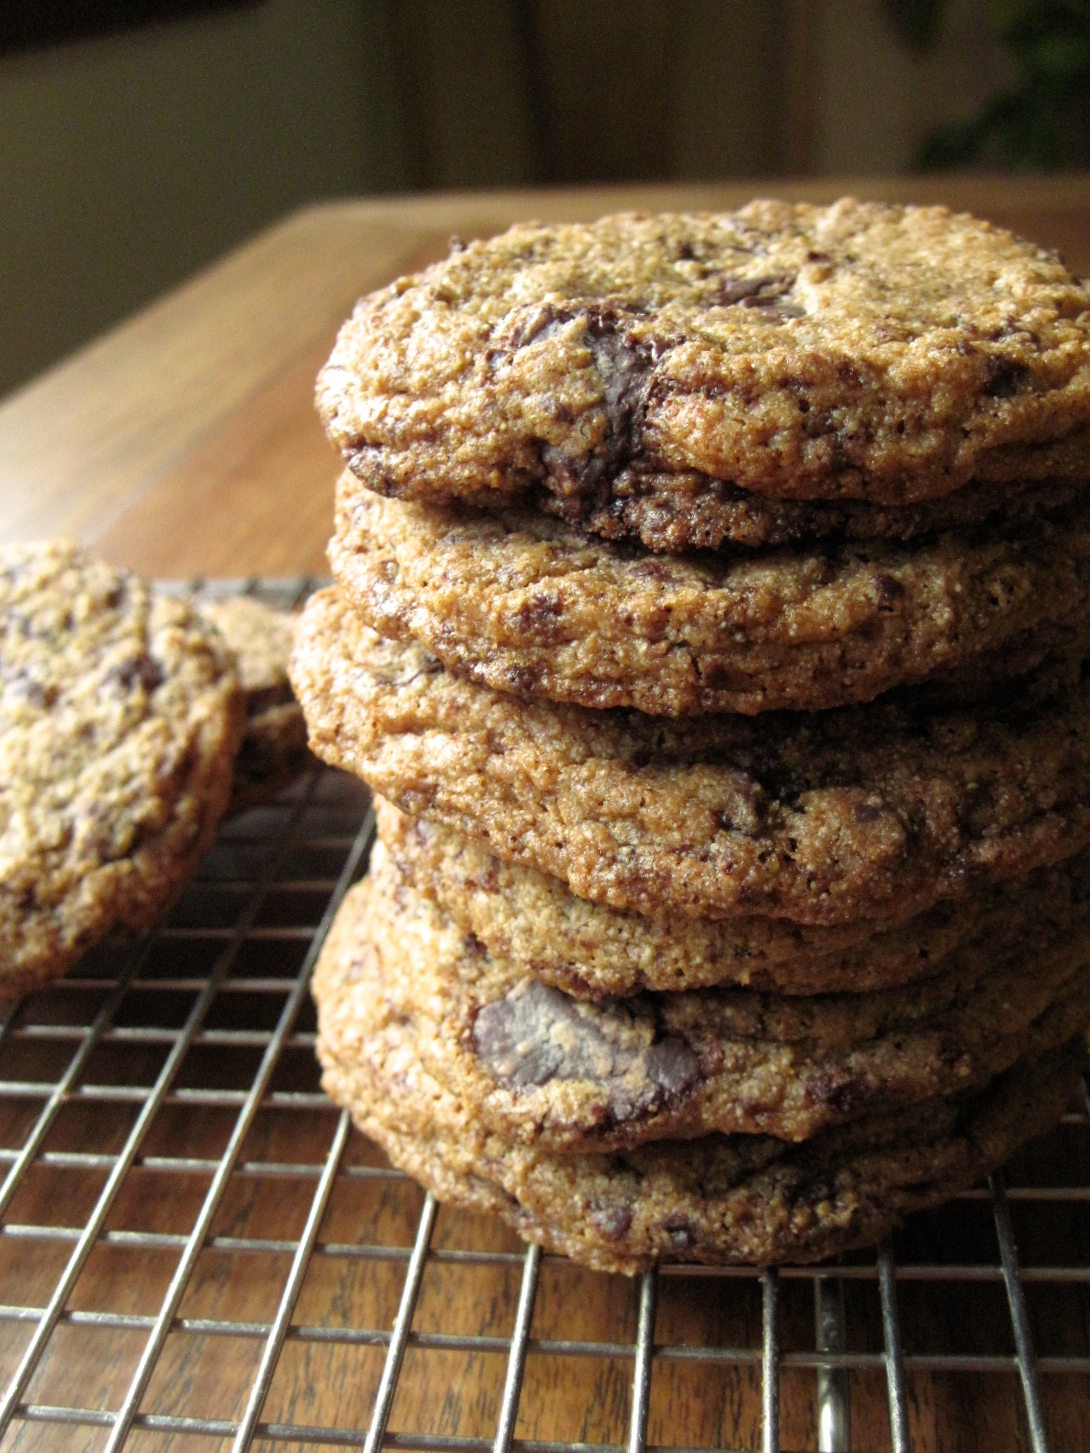 100% Whole Wheat Chocolate Chip Cookies | Grain Mill Wagon